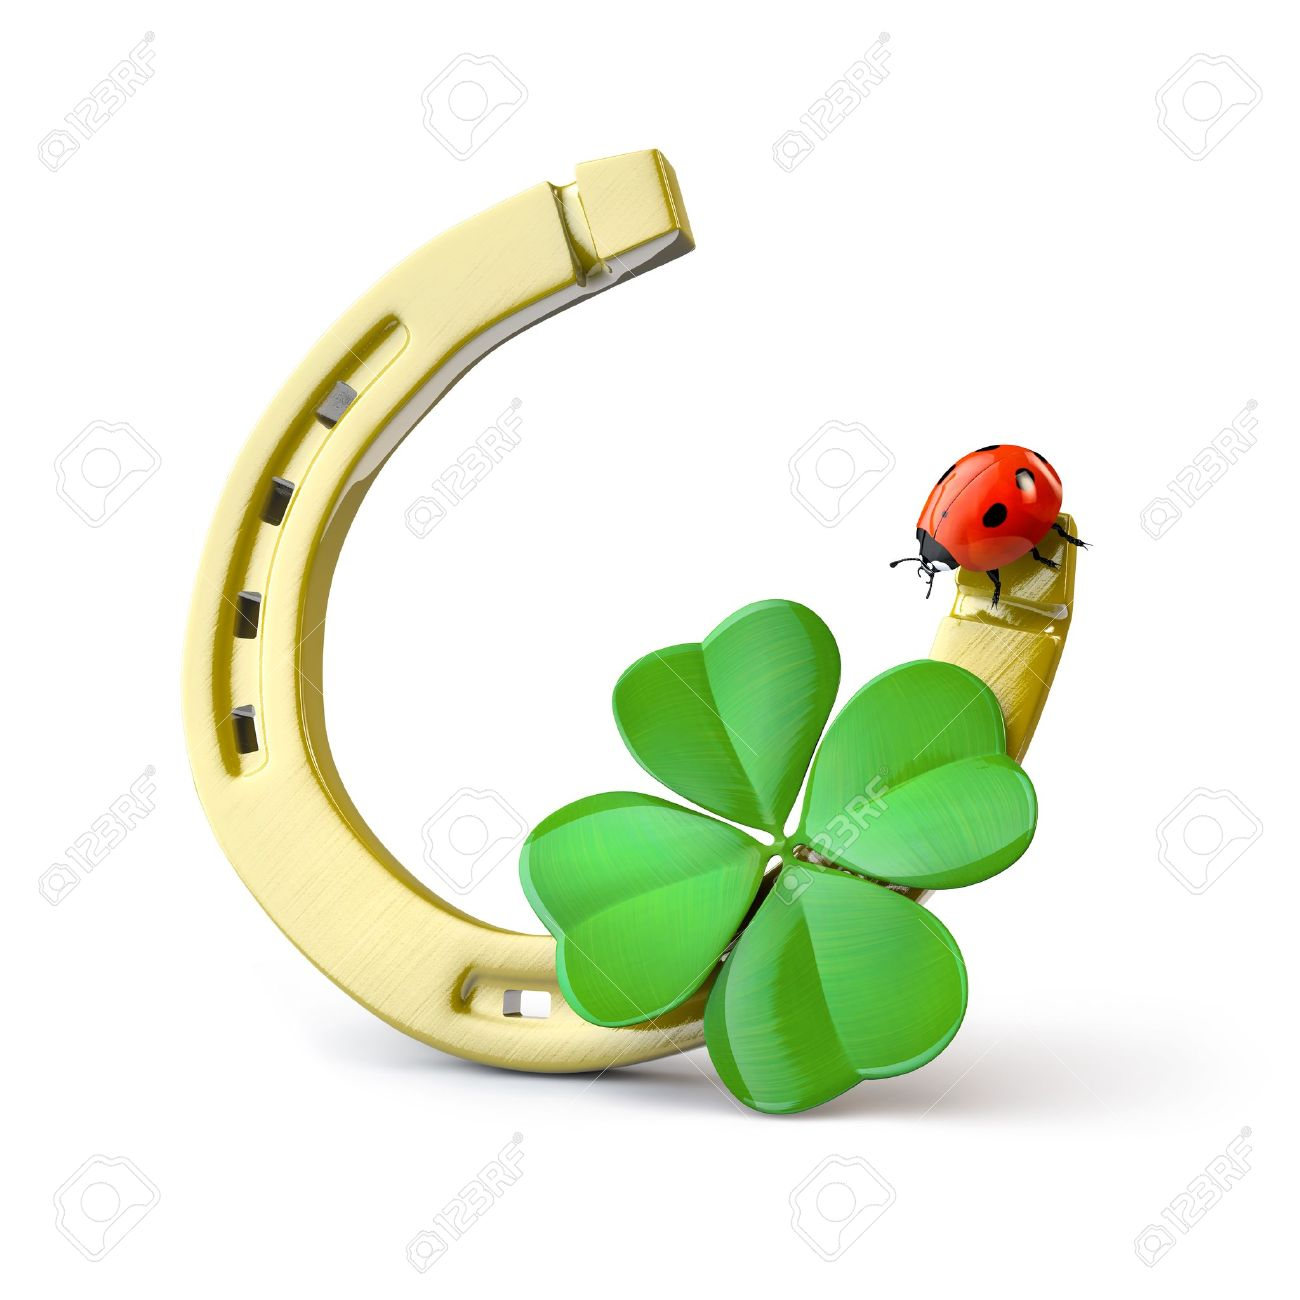 15473327-lucky-symbols-horse-shoe-four-leaf-clover-and-ladybug